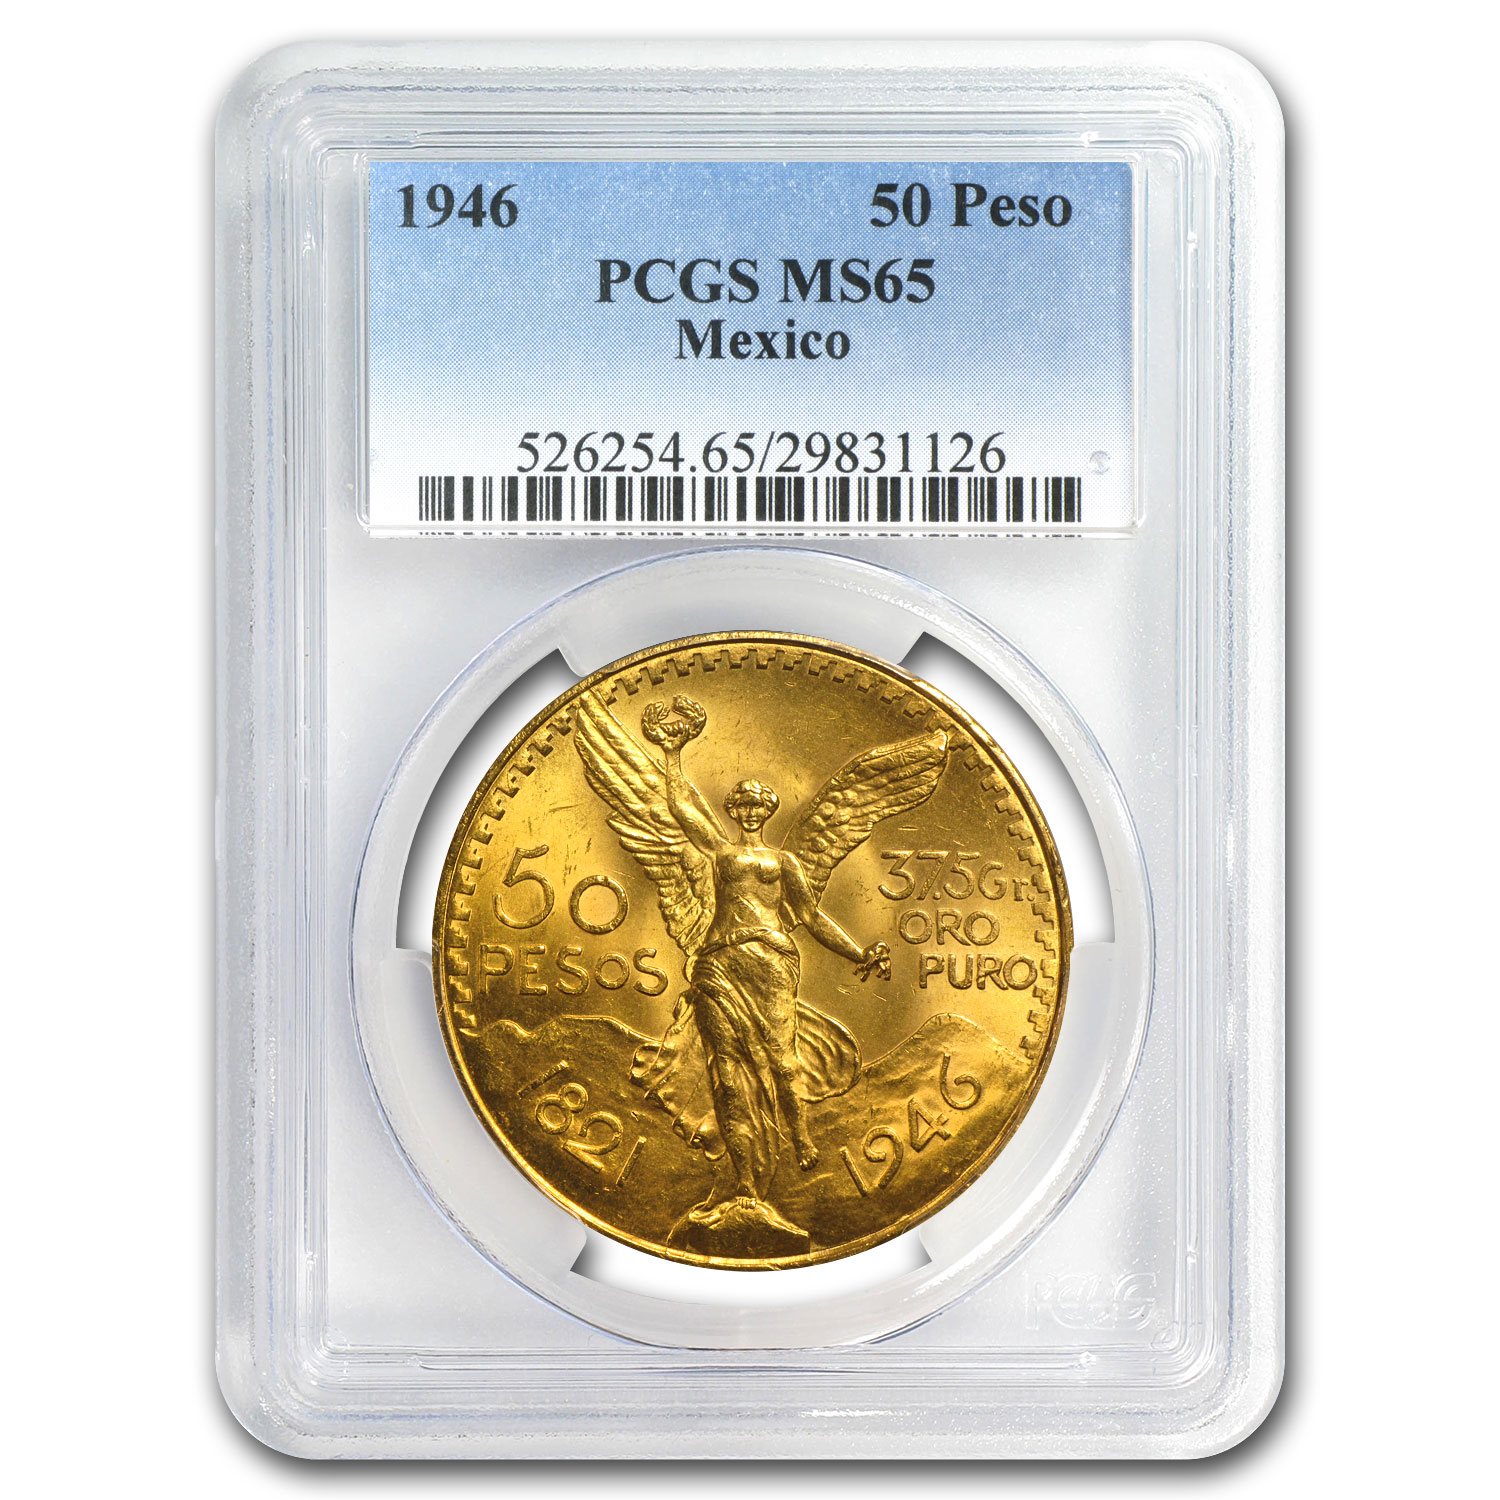 Mexico 1946 50 Pesos Gold MS-65 PCGS